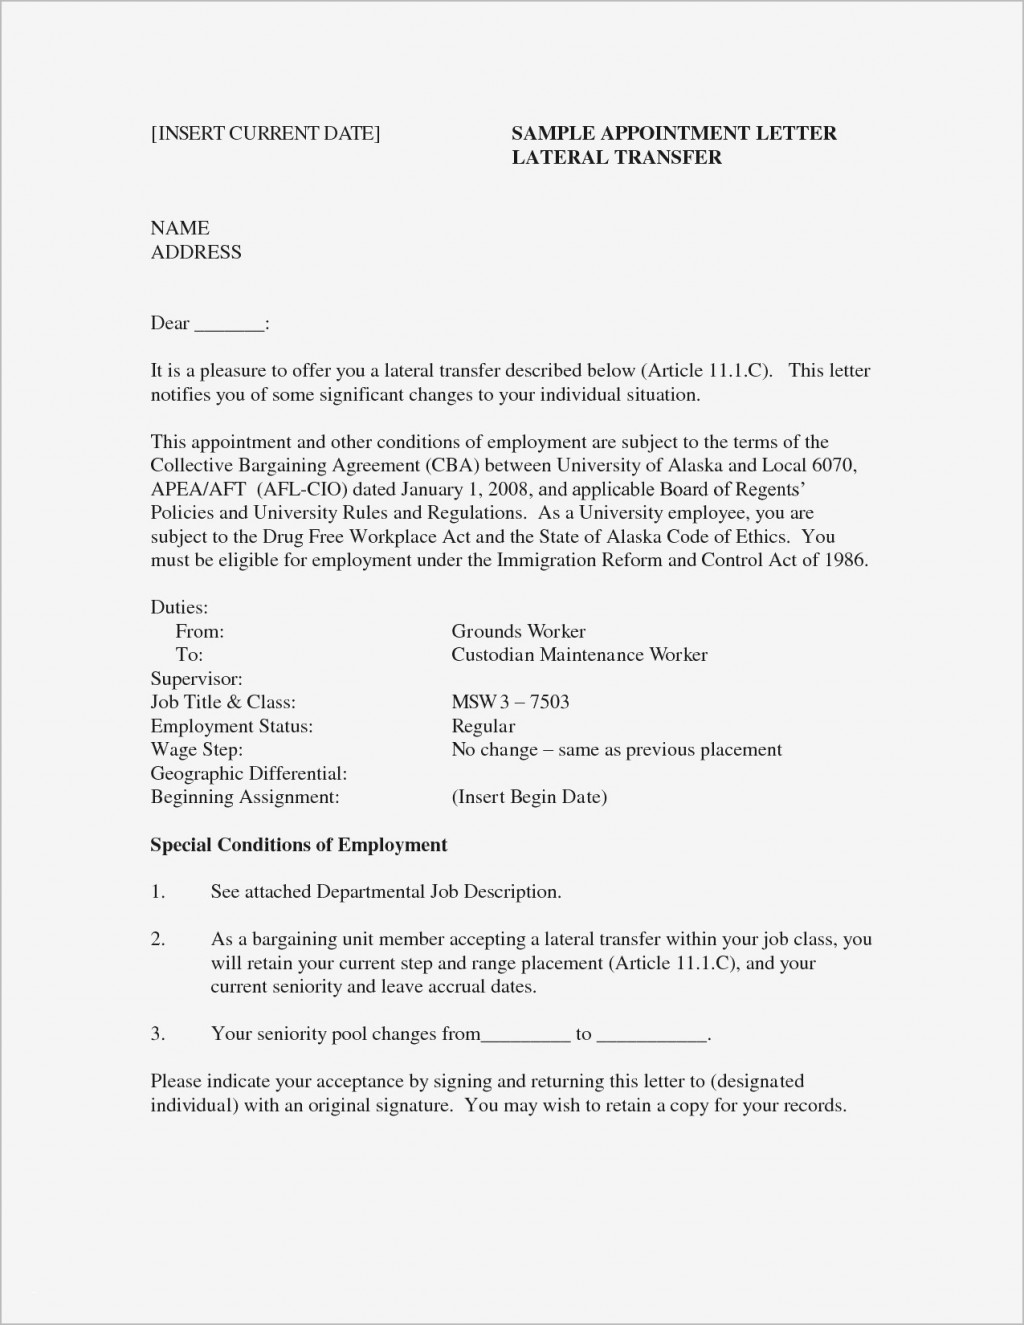 023 College English Research Paper Example Resume For No Previous Work Experience Awesome Education Job Sample Unusual Large